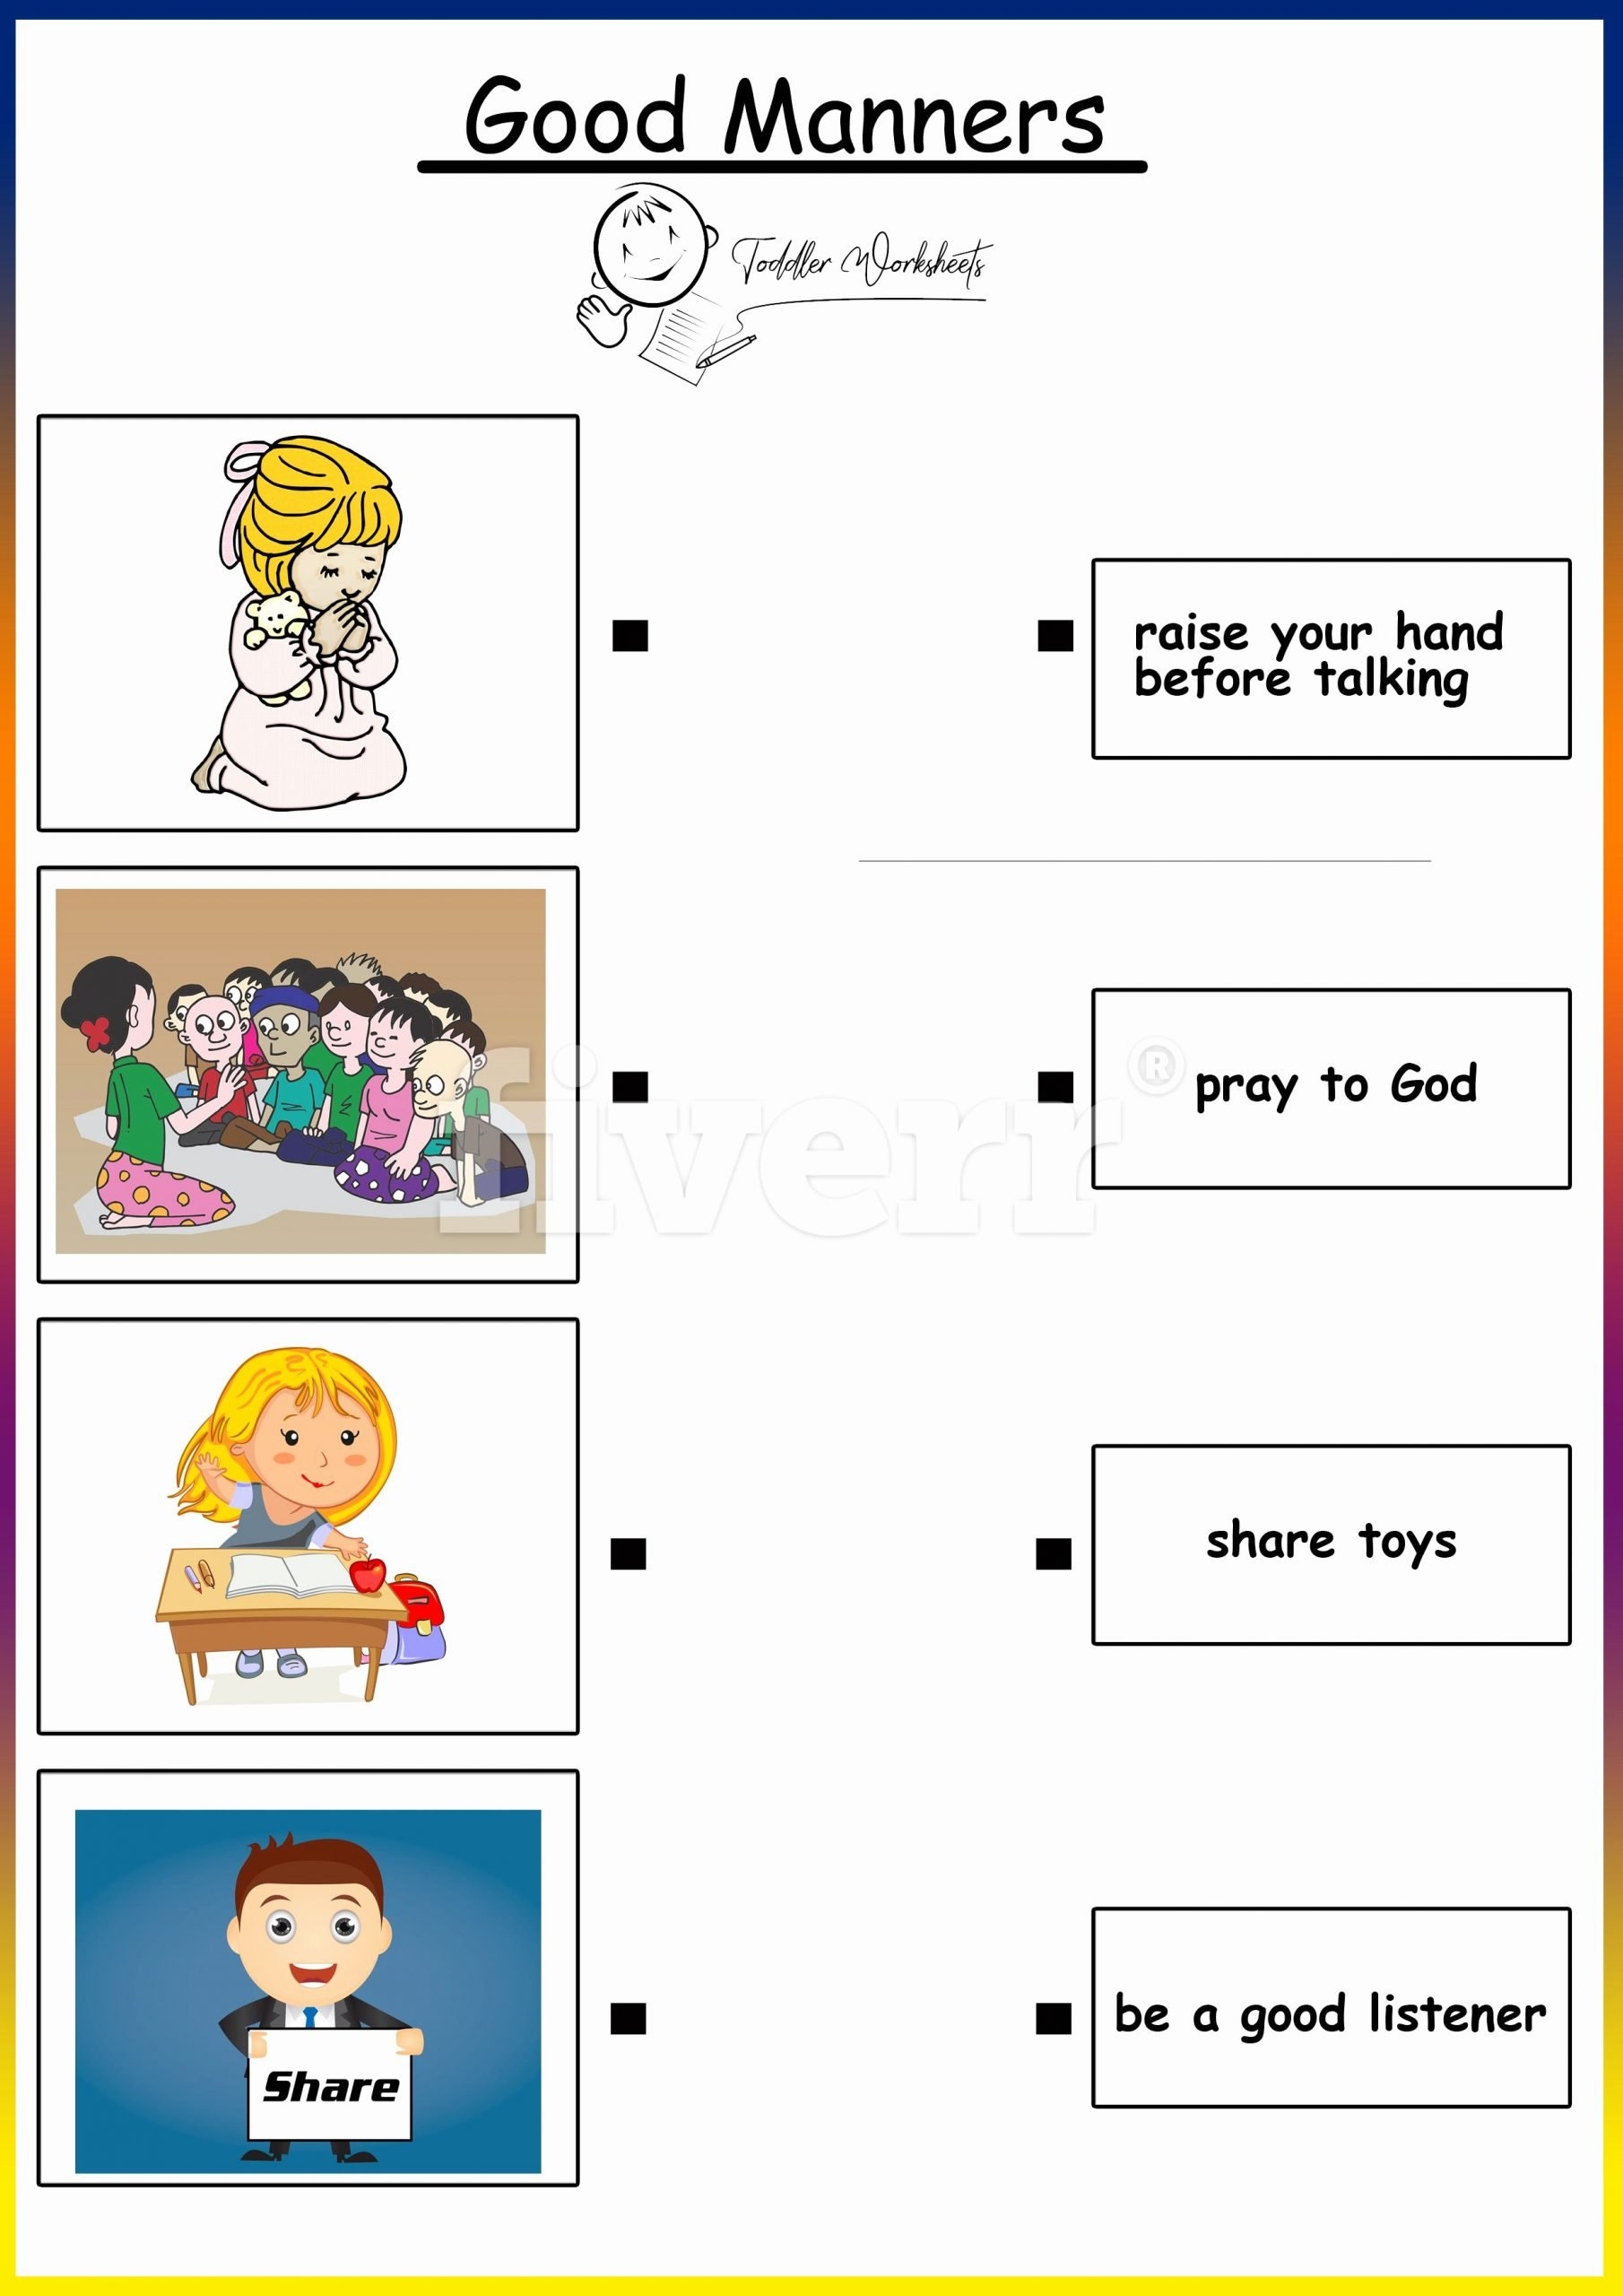 Manners Worksheets for Preschoolers Inspirational Preschool Free Worksheets Good Manners